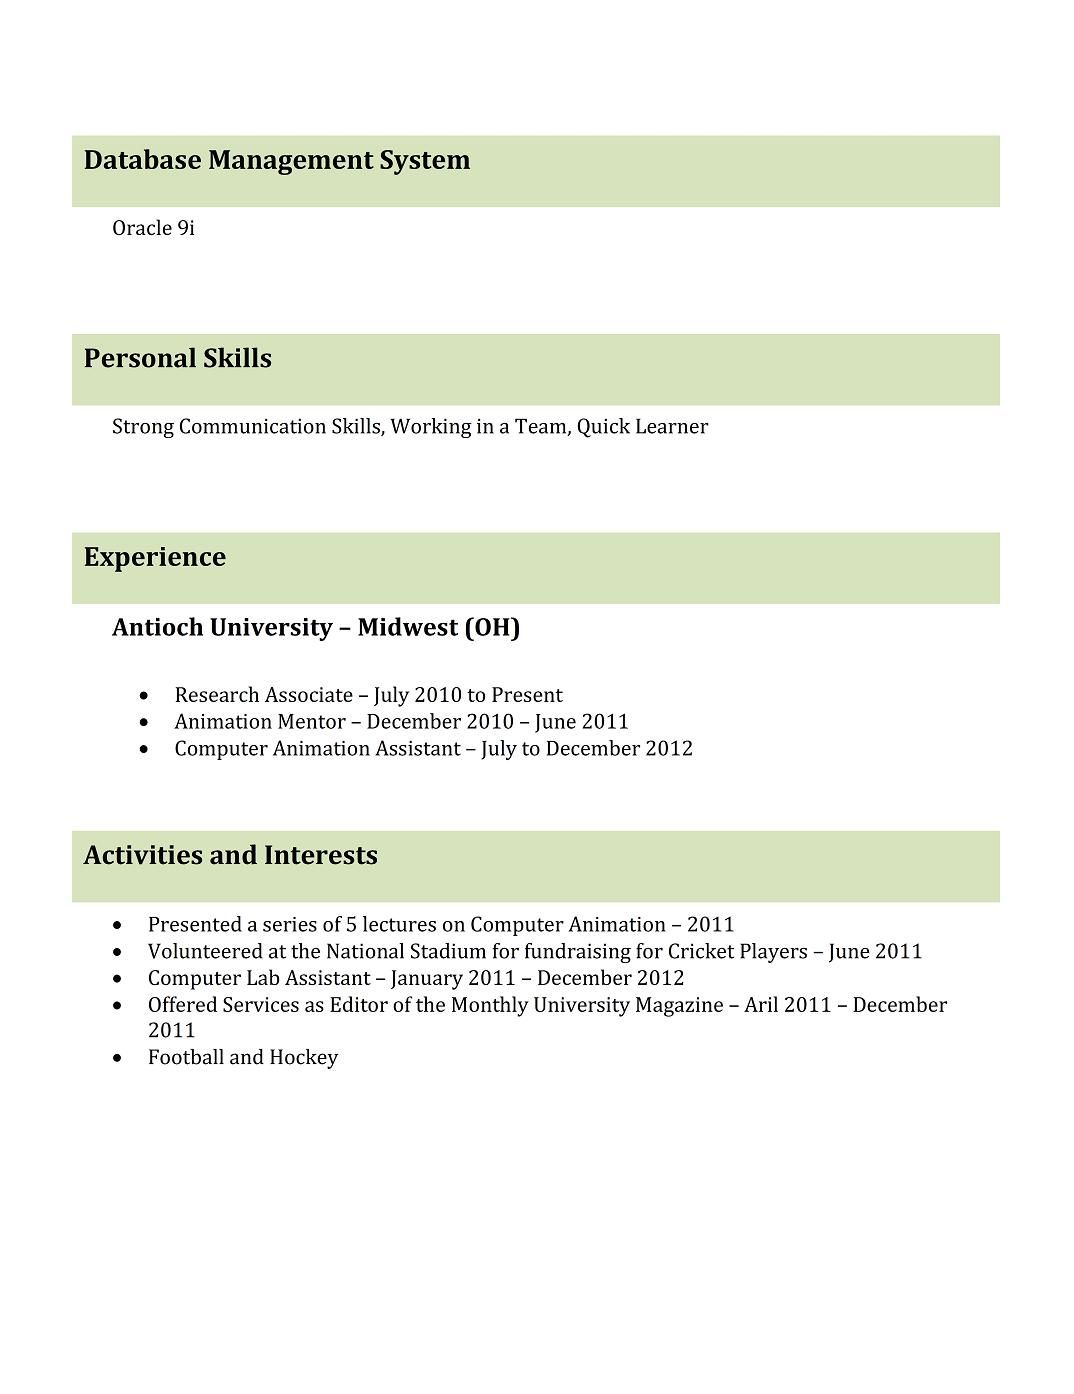 Download Resume Templates Free For Freshers Looking The First Job Free Resume Templates Download For Freshers Best Professional Format Company Samples With